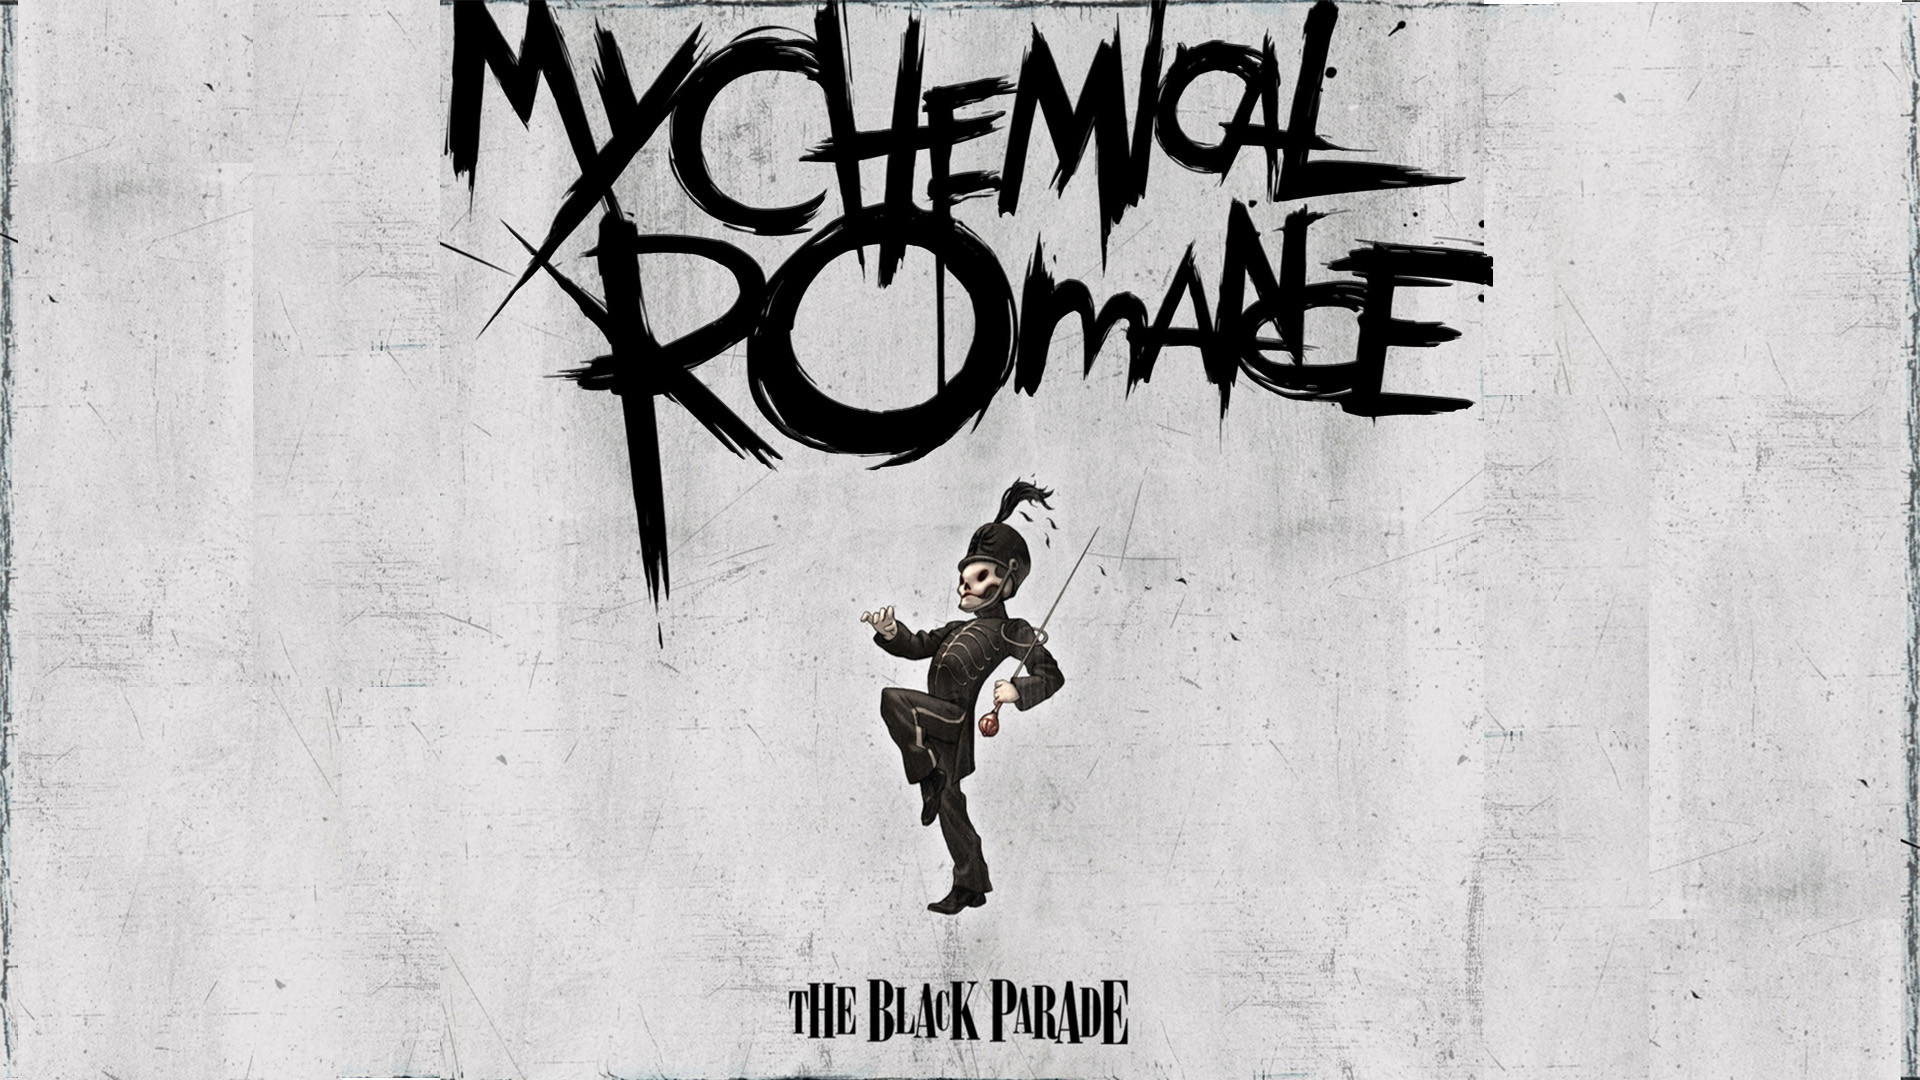 1920x1080 My Chemical Romance The Black Parade Wallpaper